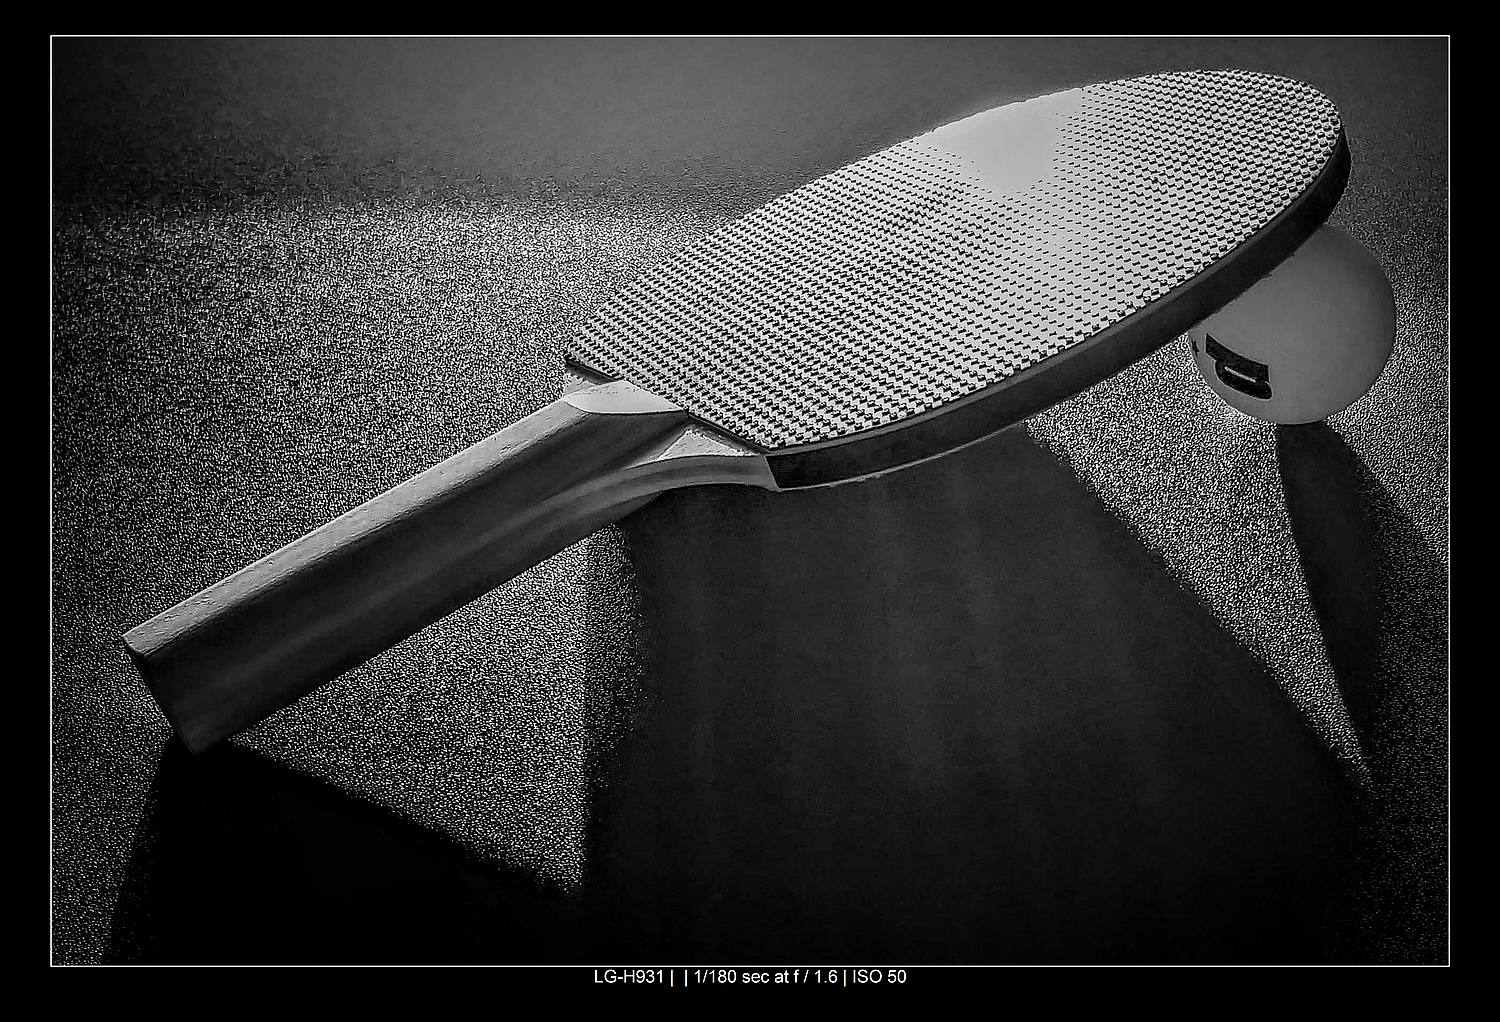 ping pong paddle in black and white